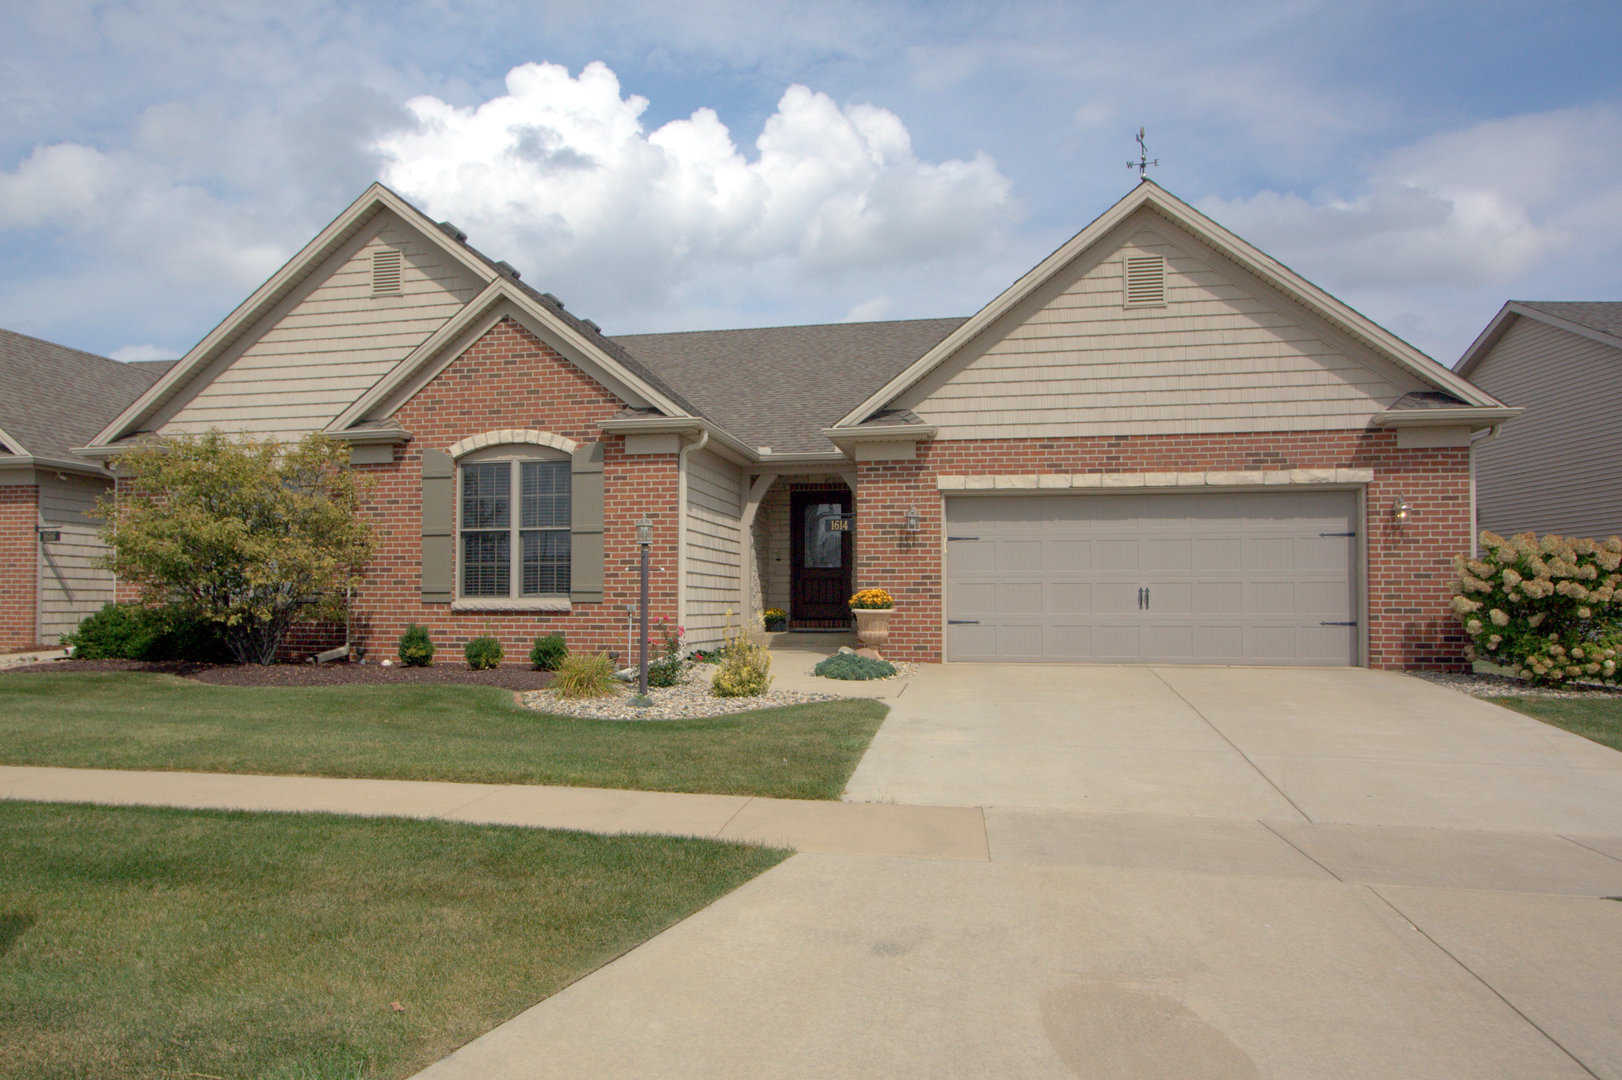 1614 Congressional Way, Champaign in Champaign County, IL 61822 Home for Sale